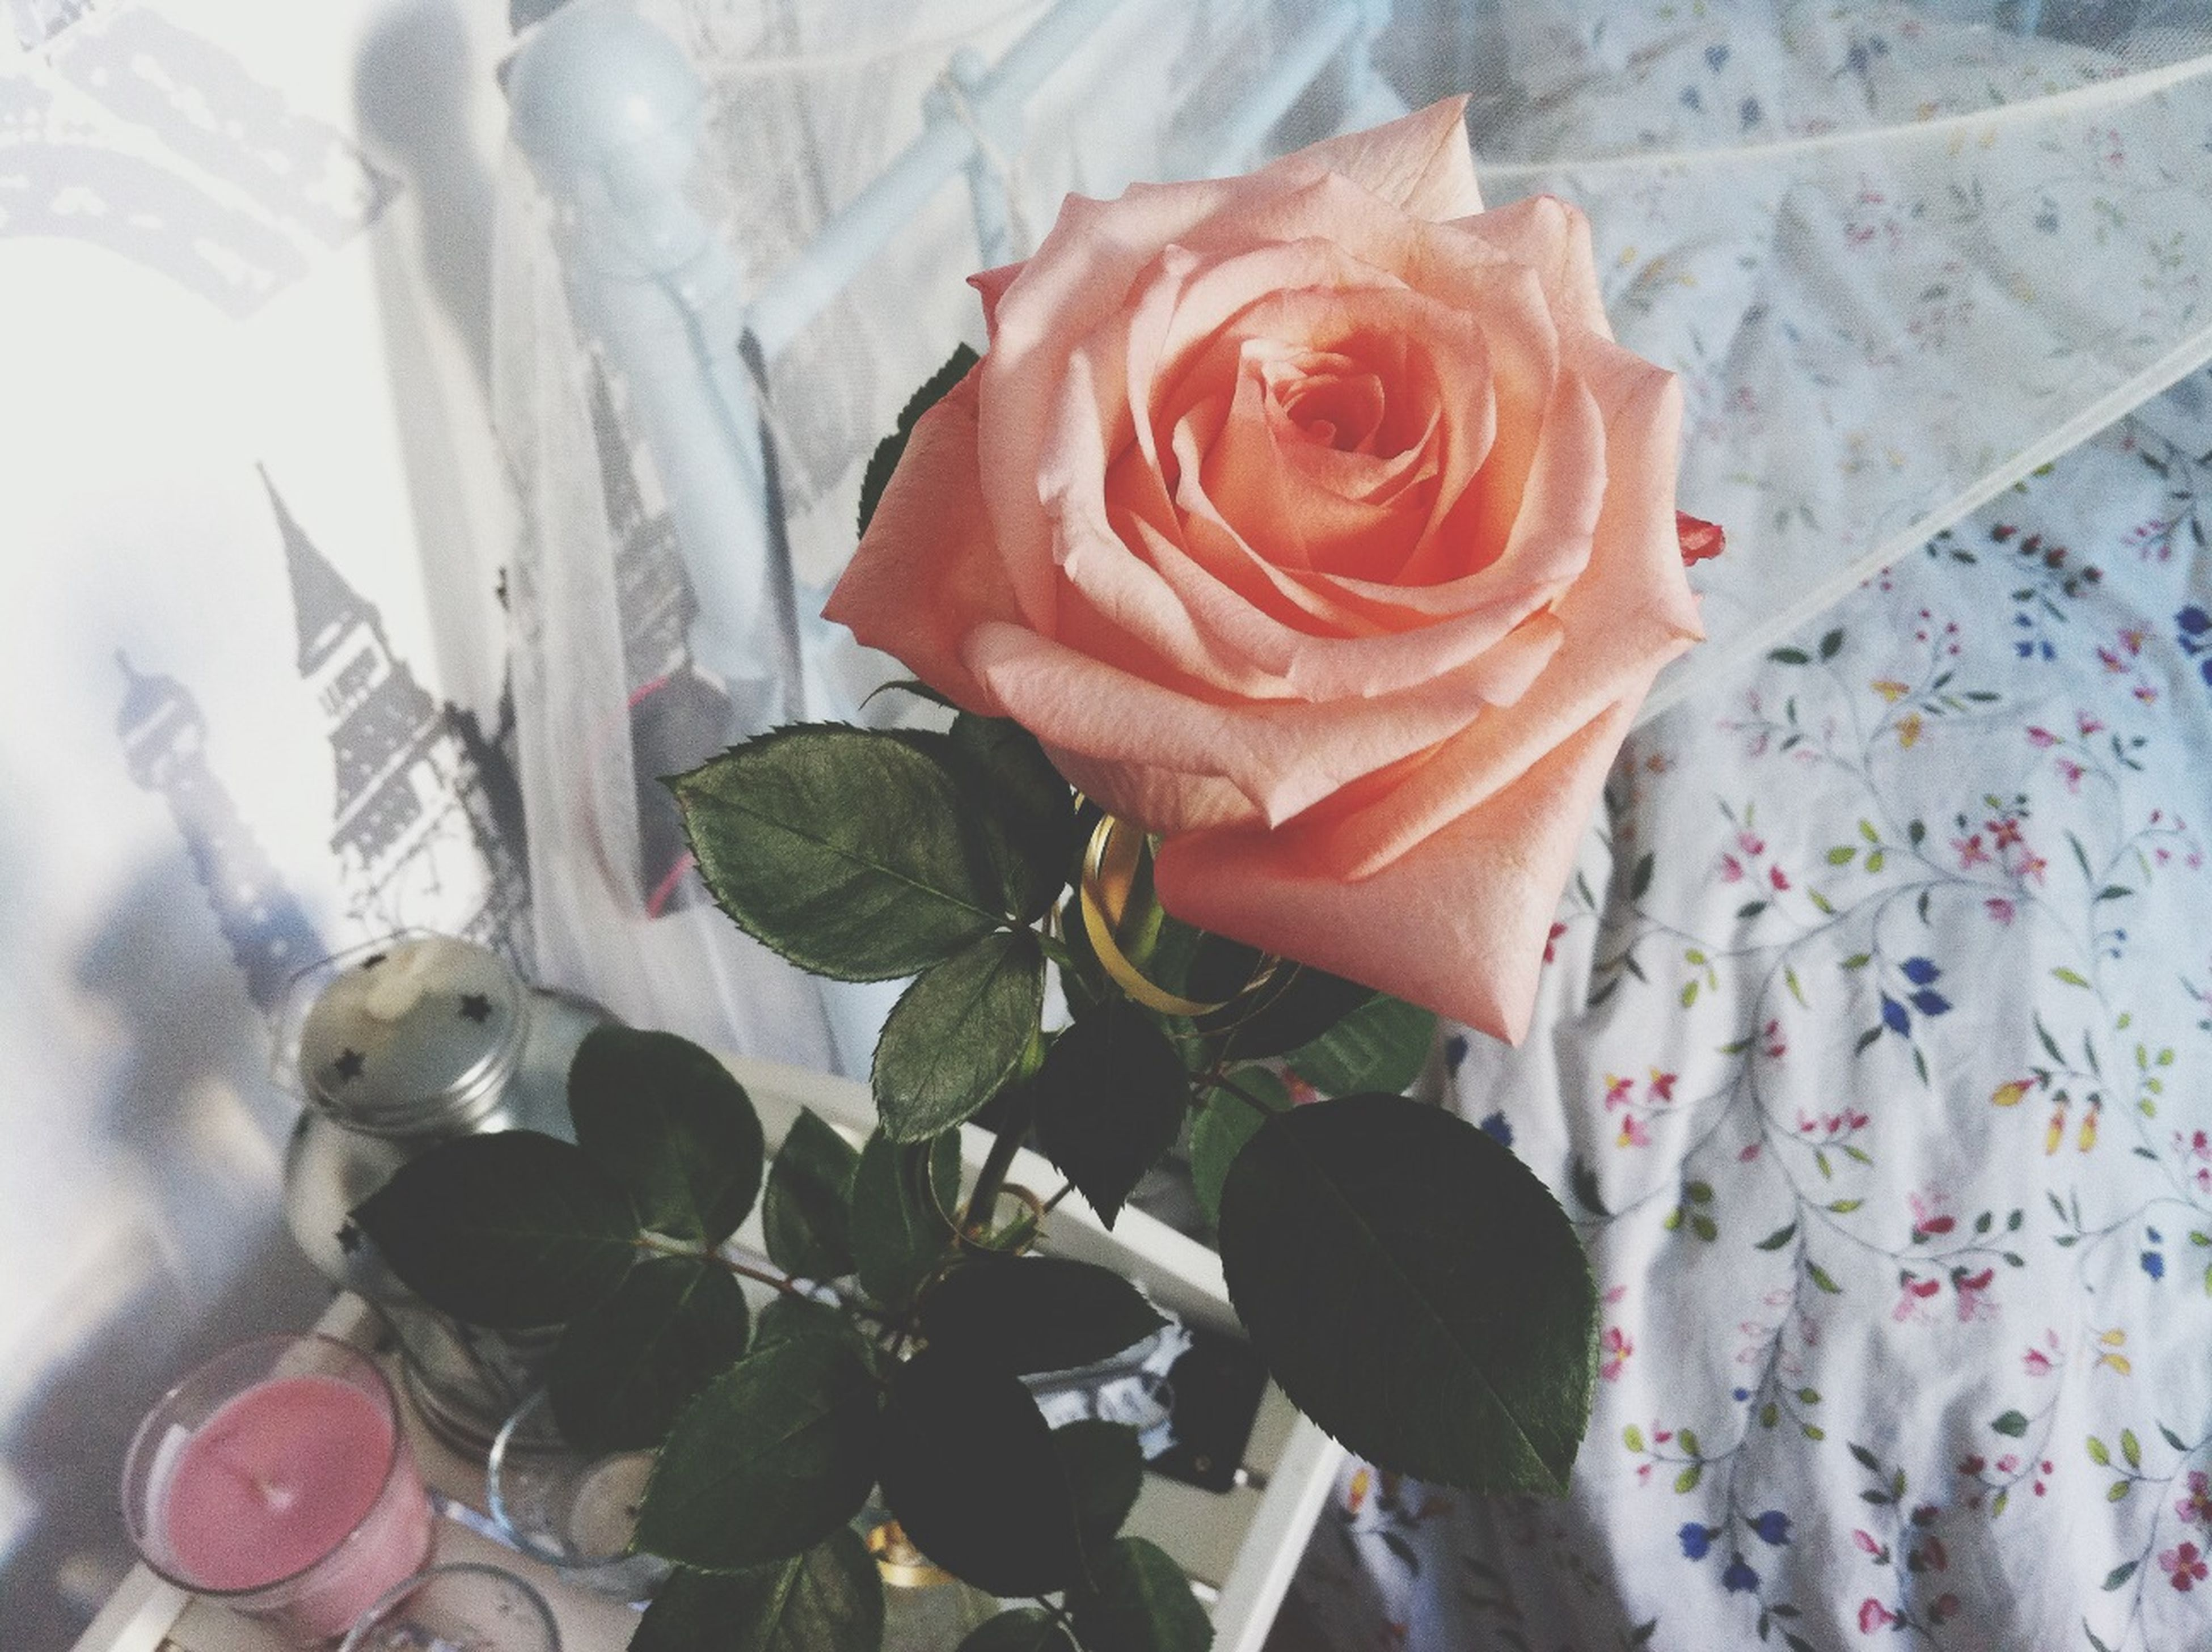 flower, rose - flower, petal, flower head, freshness, fragility, close-up, rose, beauty in nature, indoors, pink color, blooming, nature, growth, no people, high angle view, day, plant, focus on foreground, softness